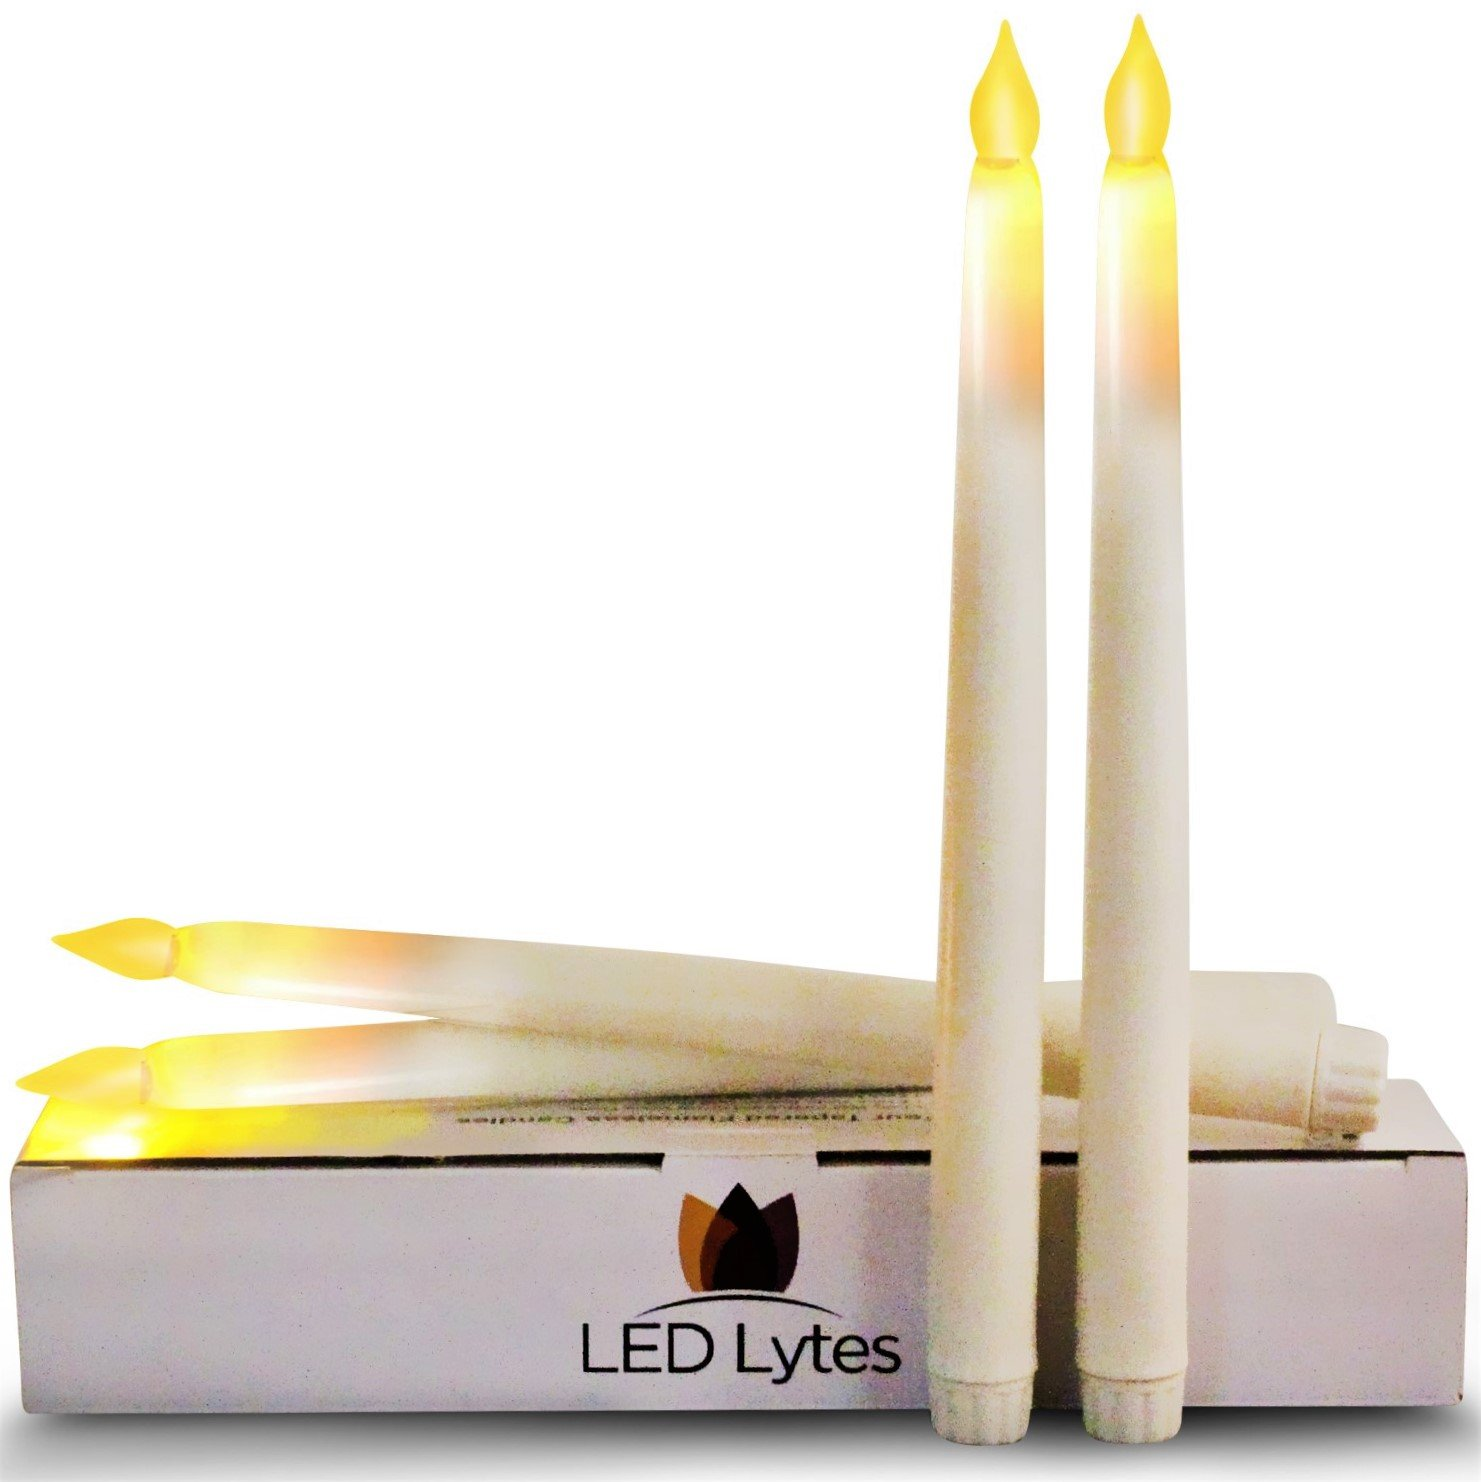 Tapered Timer Candlesticks Flameless Candles - Set of 4 Battery Operated Flameless LED Candles, Ivory Wax and Amber Yellow Flame, 11'' Tall and 3/4 Base by LED Lytes